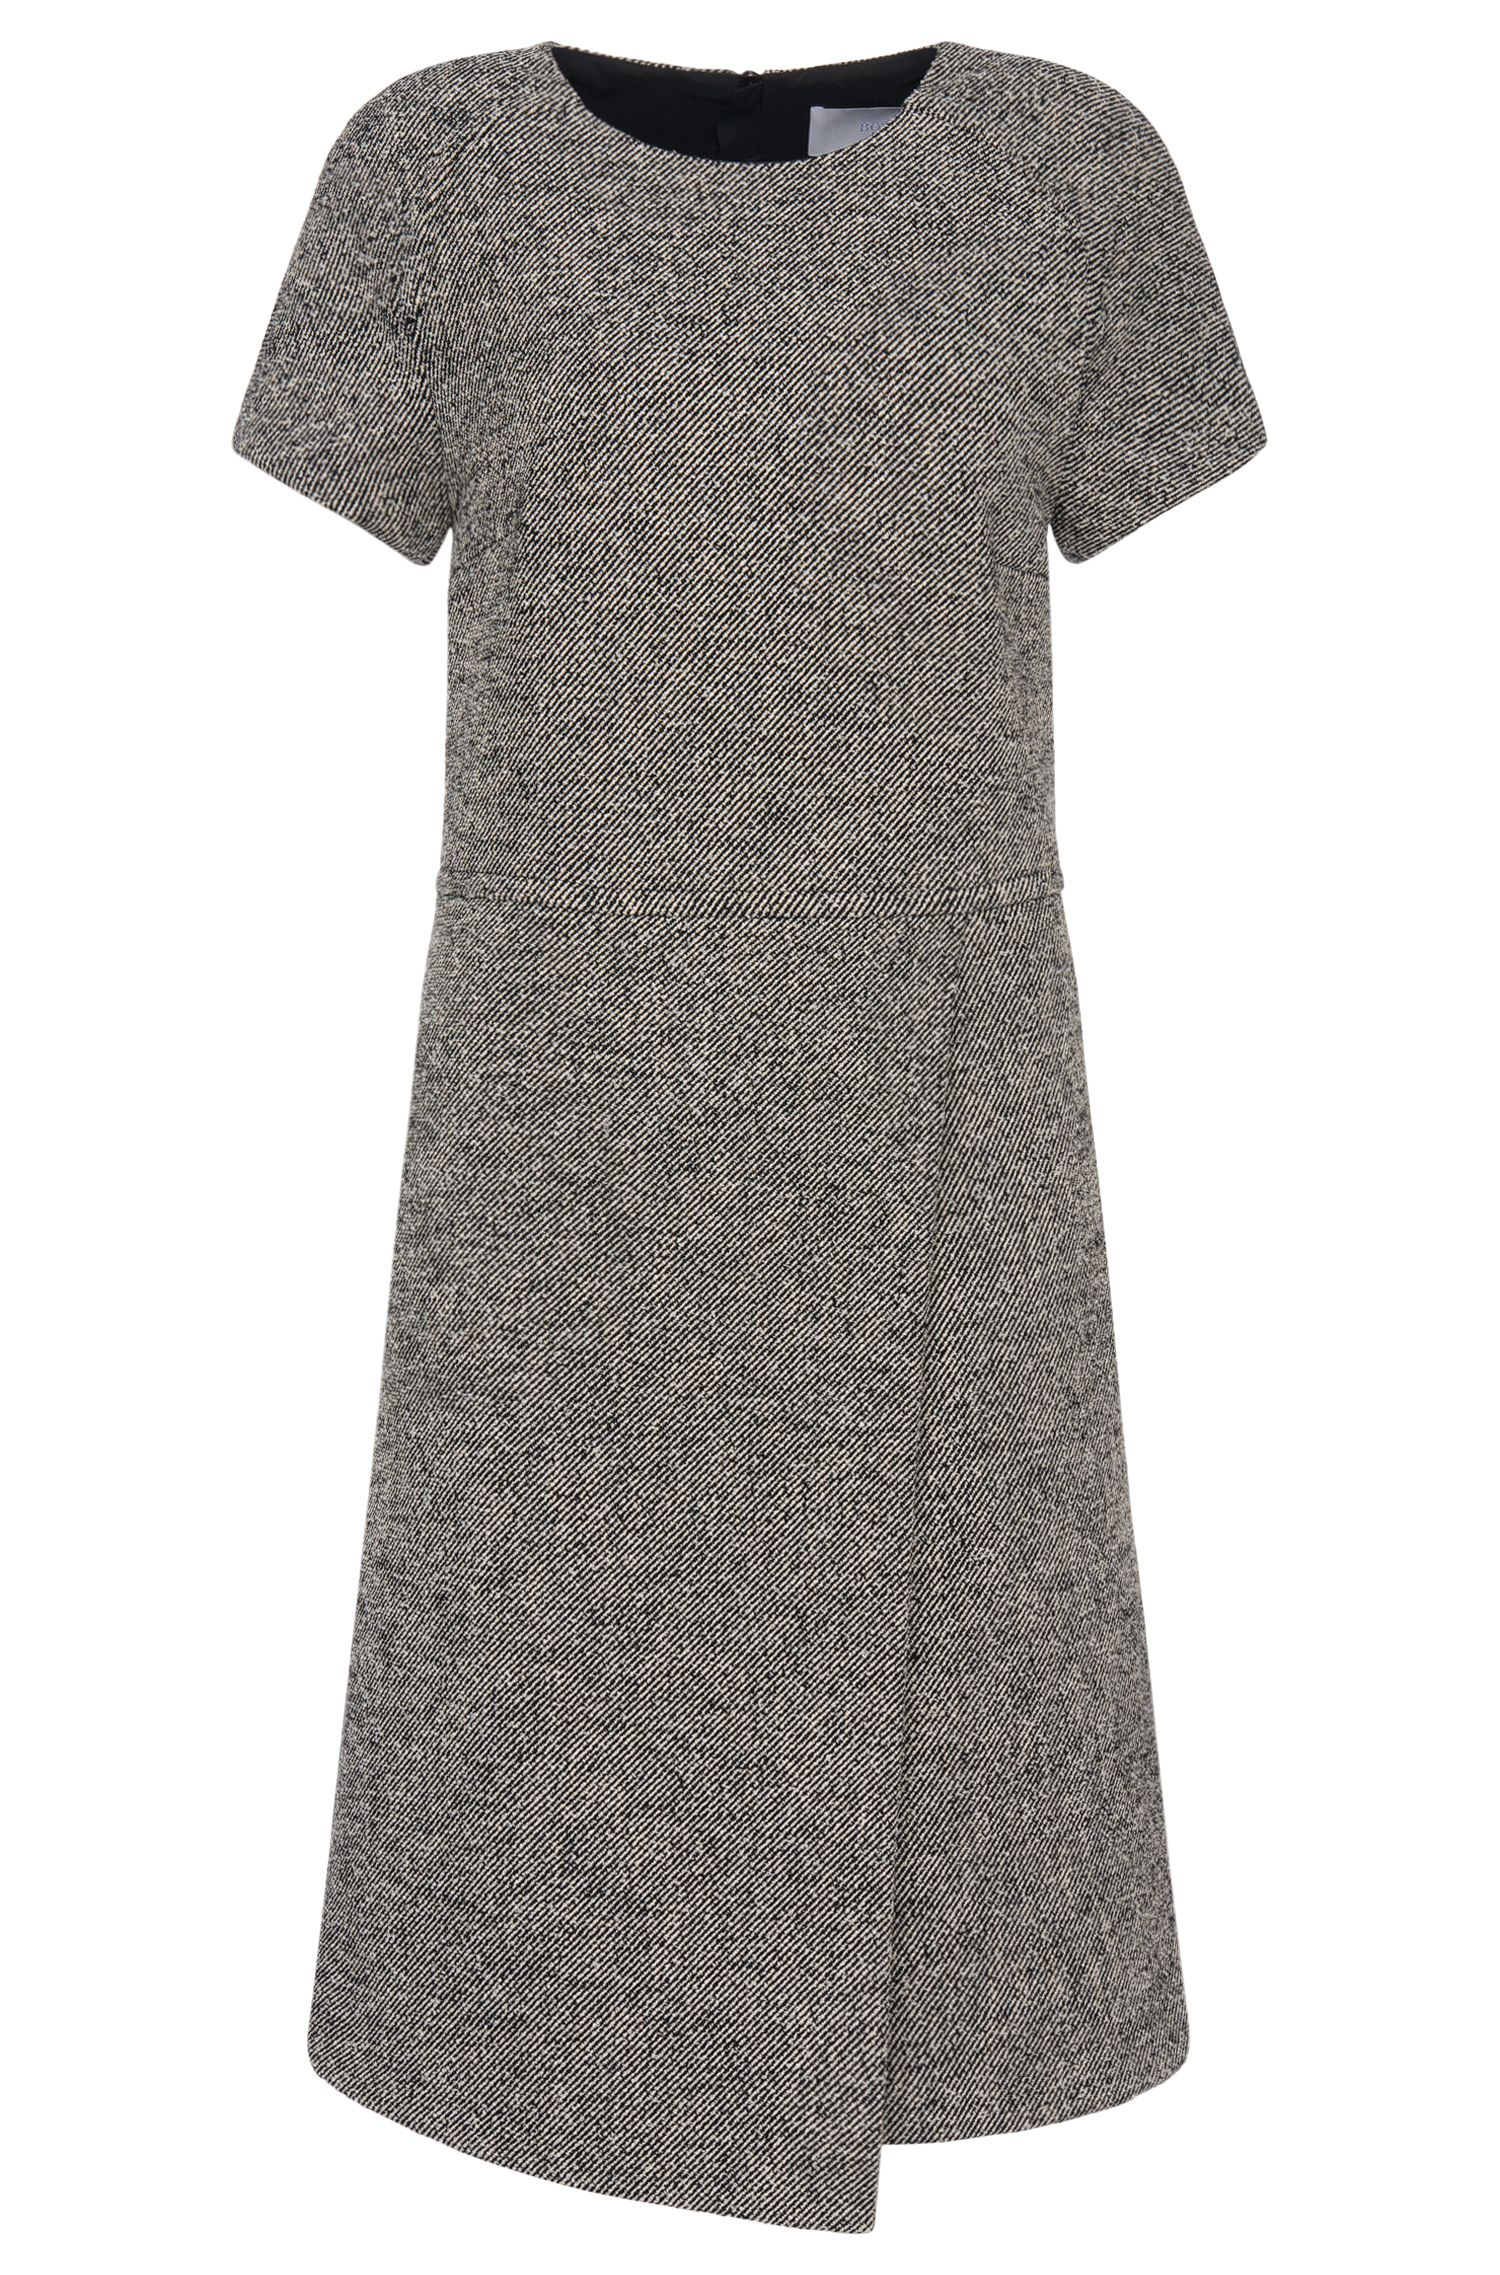 'Hikama' | Stretch Cotton Blend Shift Dress